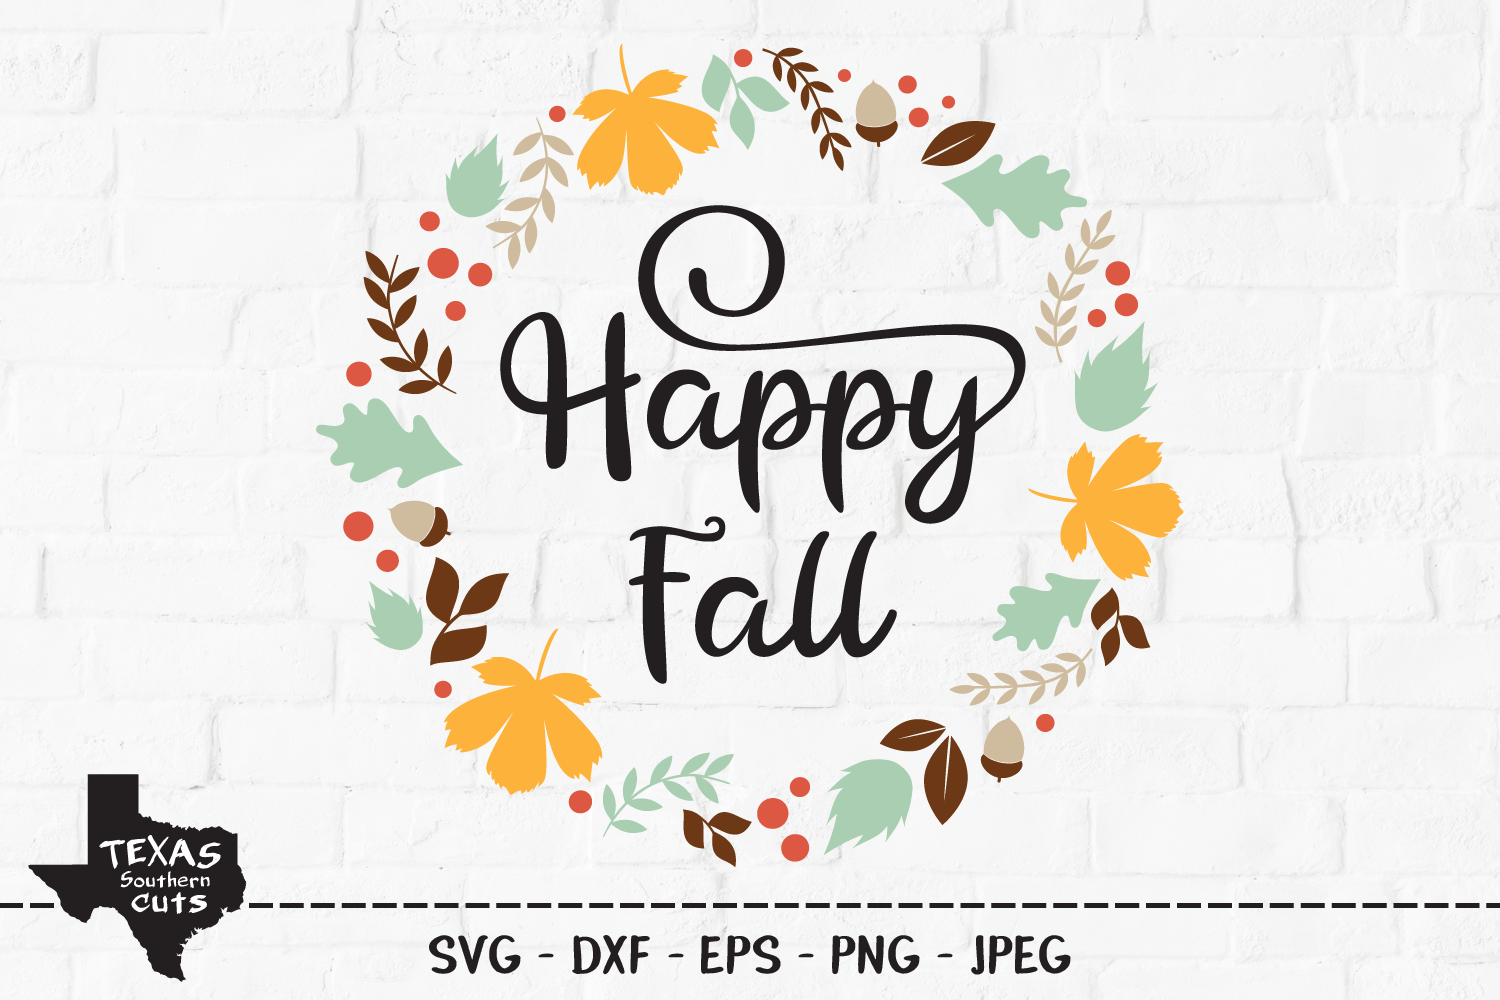 Download Free Happy Fall Wreath Design Graphic By Texassoutherncuts for Cricut Explore, Silhouette and other cutting machines.